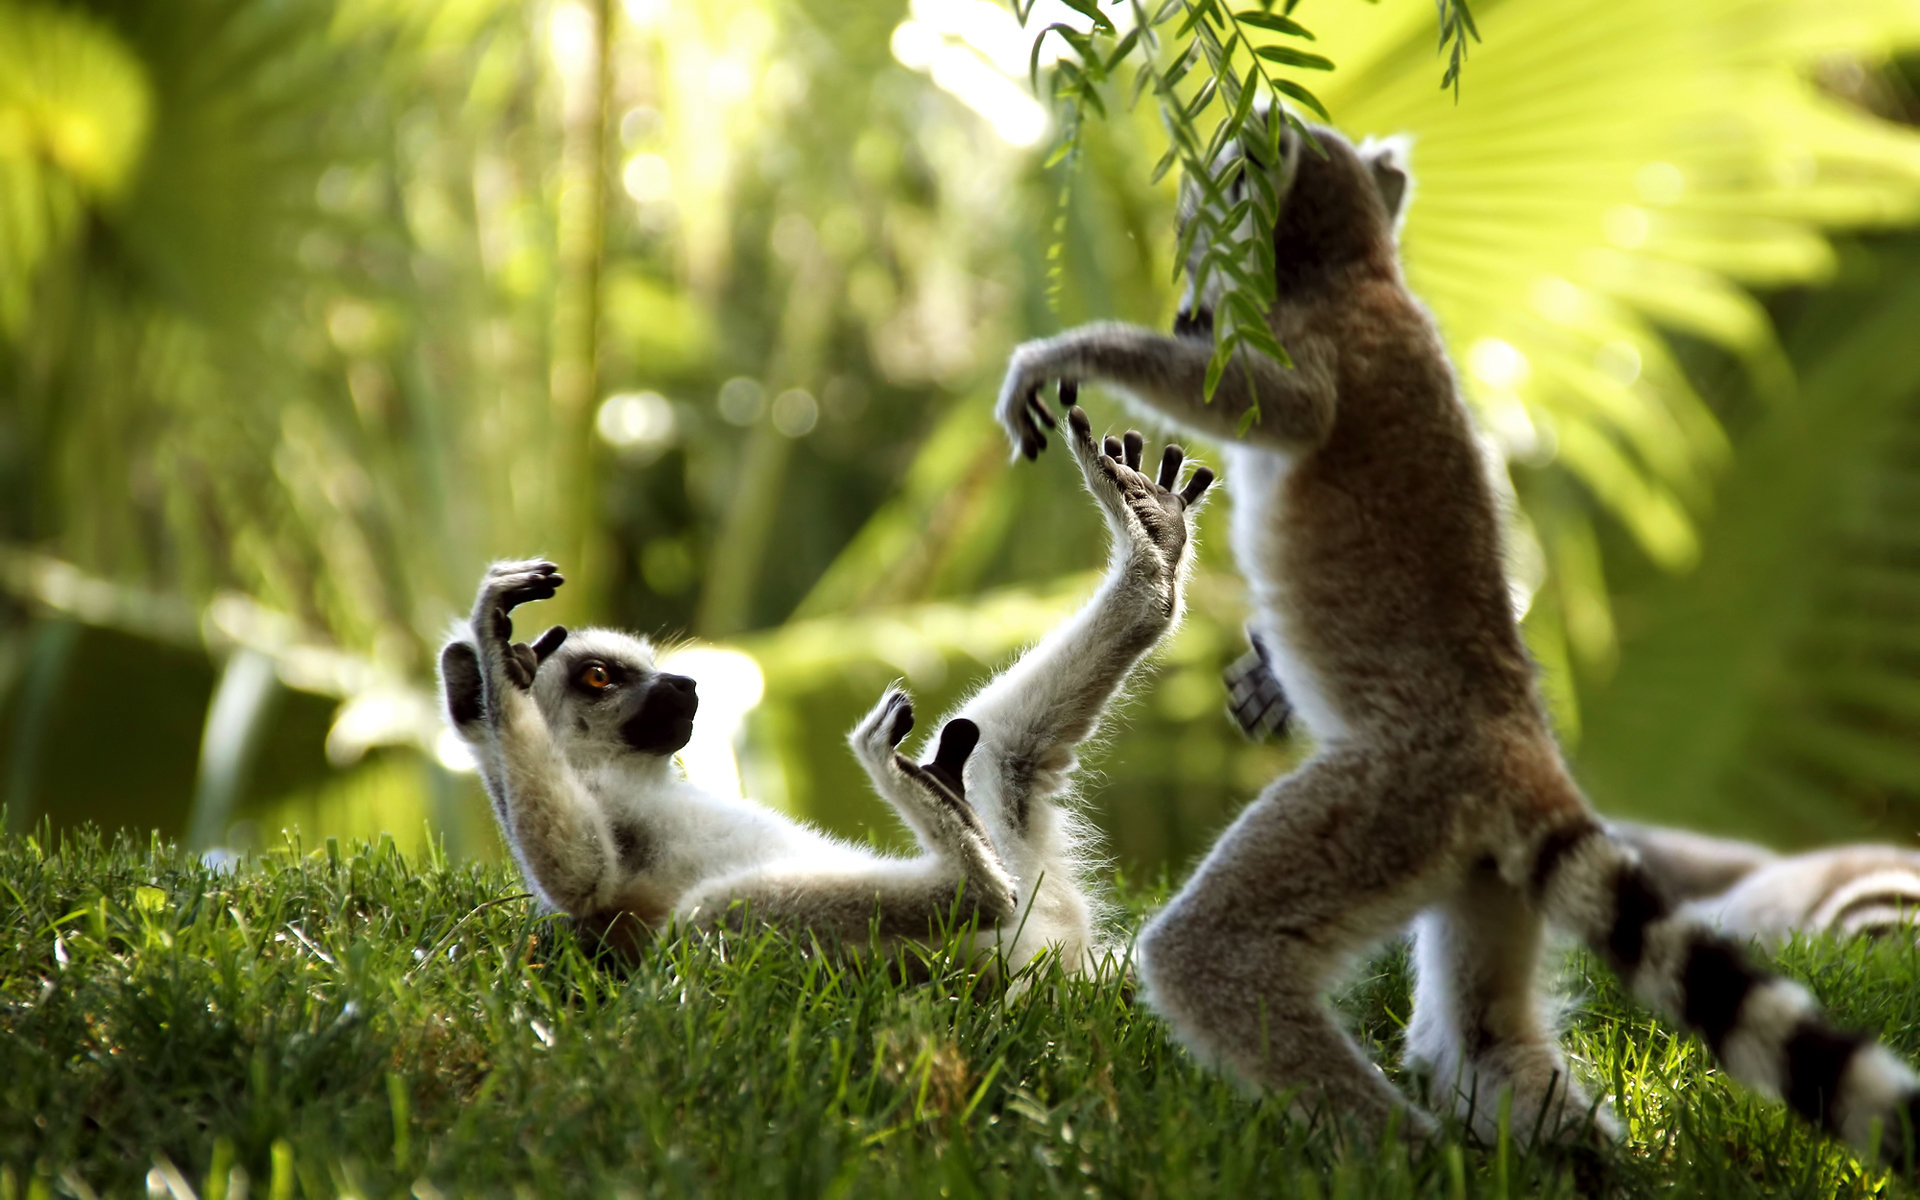 Download hd 1920x1200 Lemur PC background ID:53201 for free